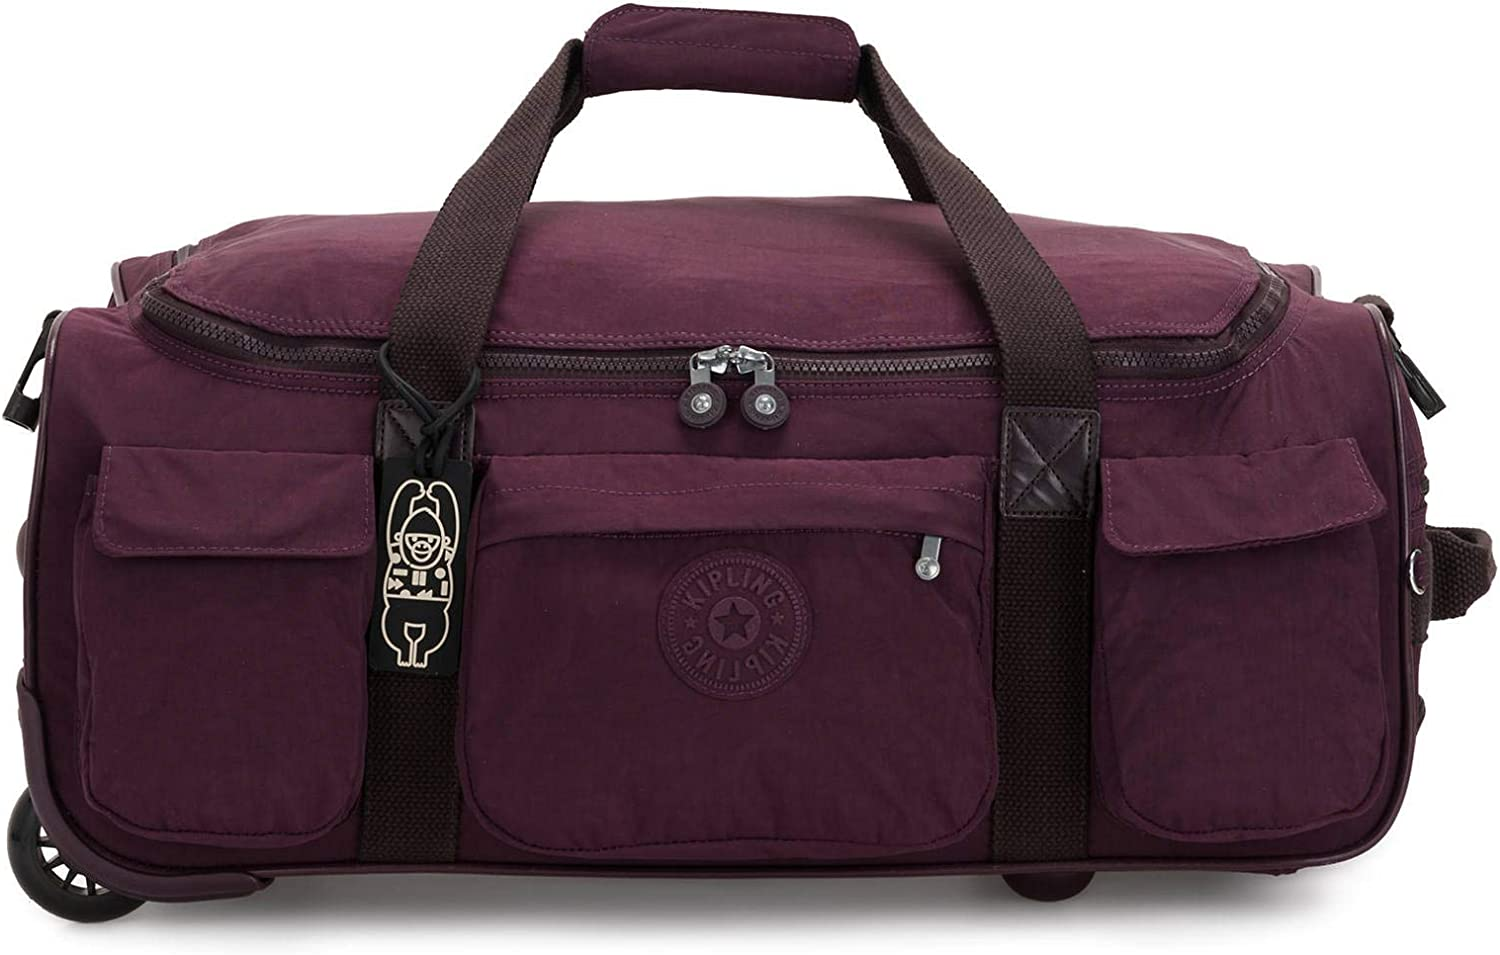 Kipling Women's Discover Small Carry-On Rolling Duffle, Dark Plum, One Size